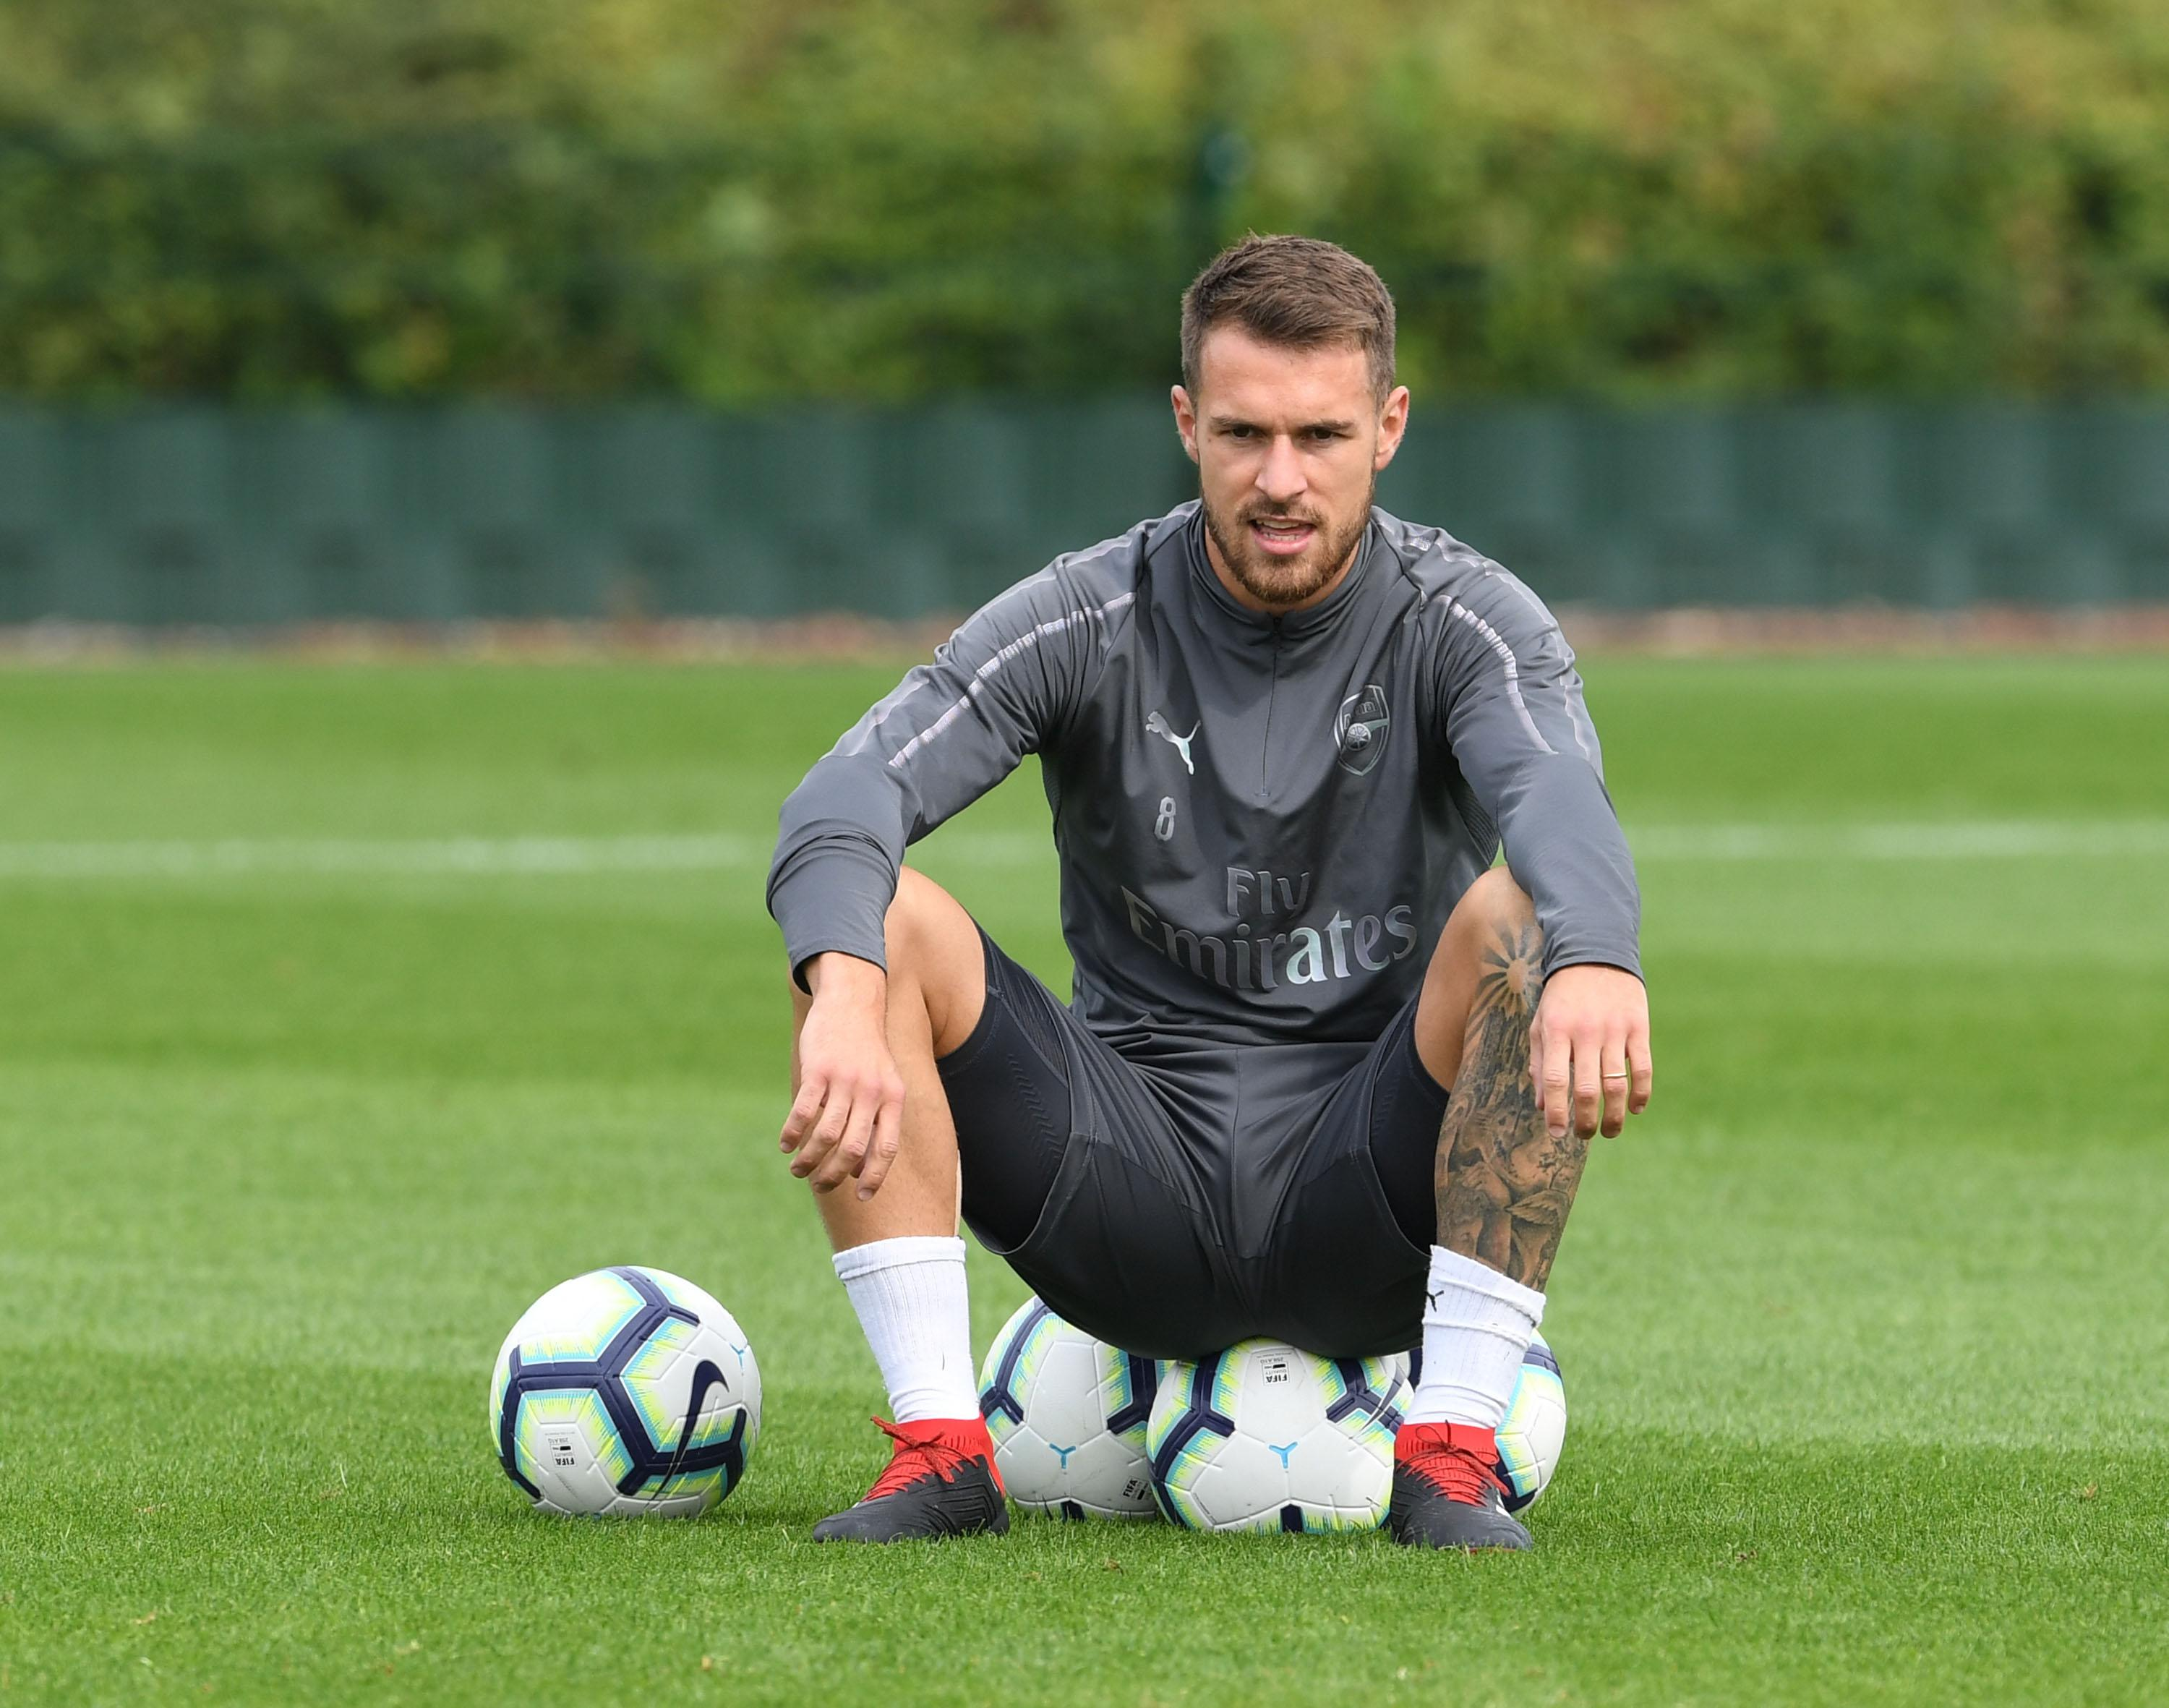 Arsenal have Ramsey have spent months trying to agree a new deal for the Welsh midfielder